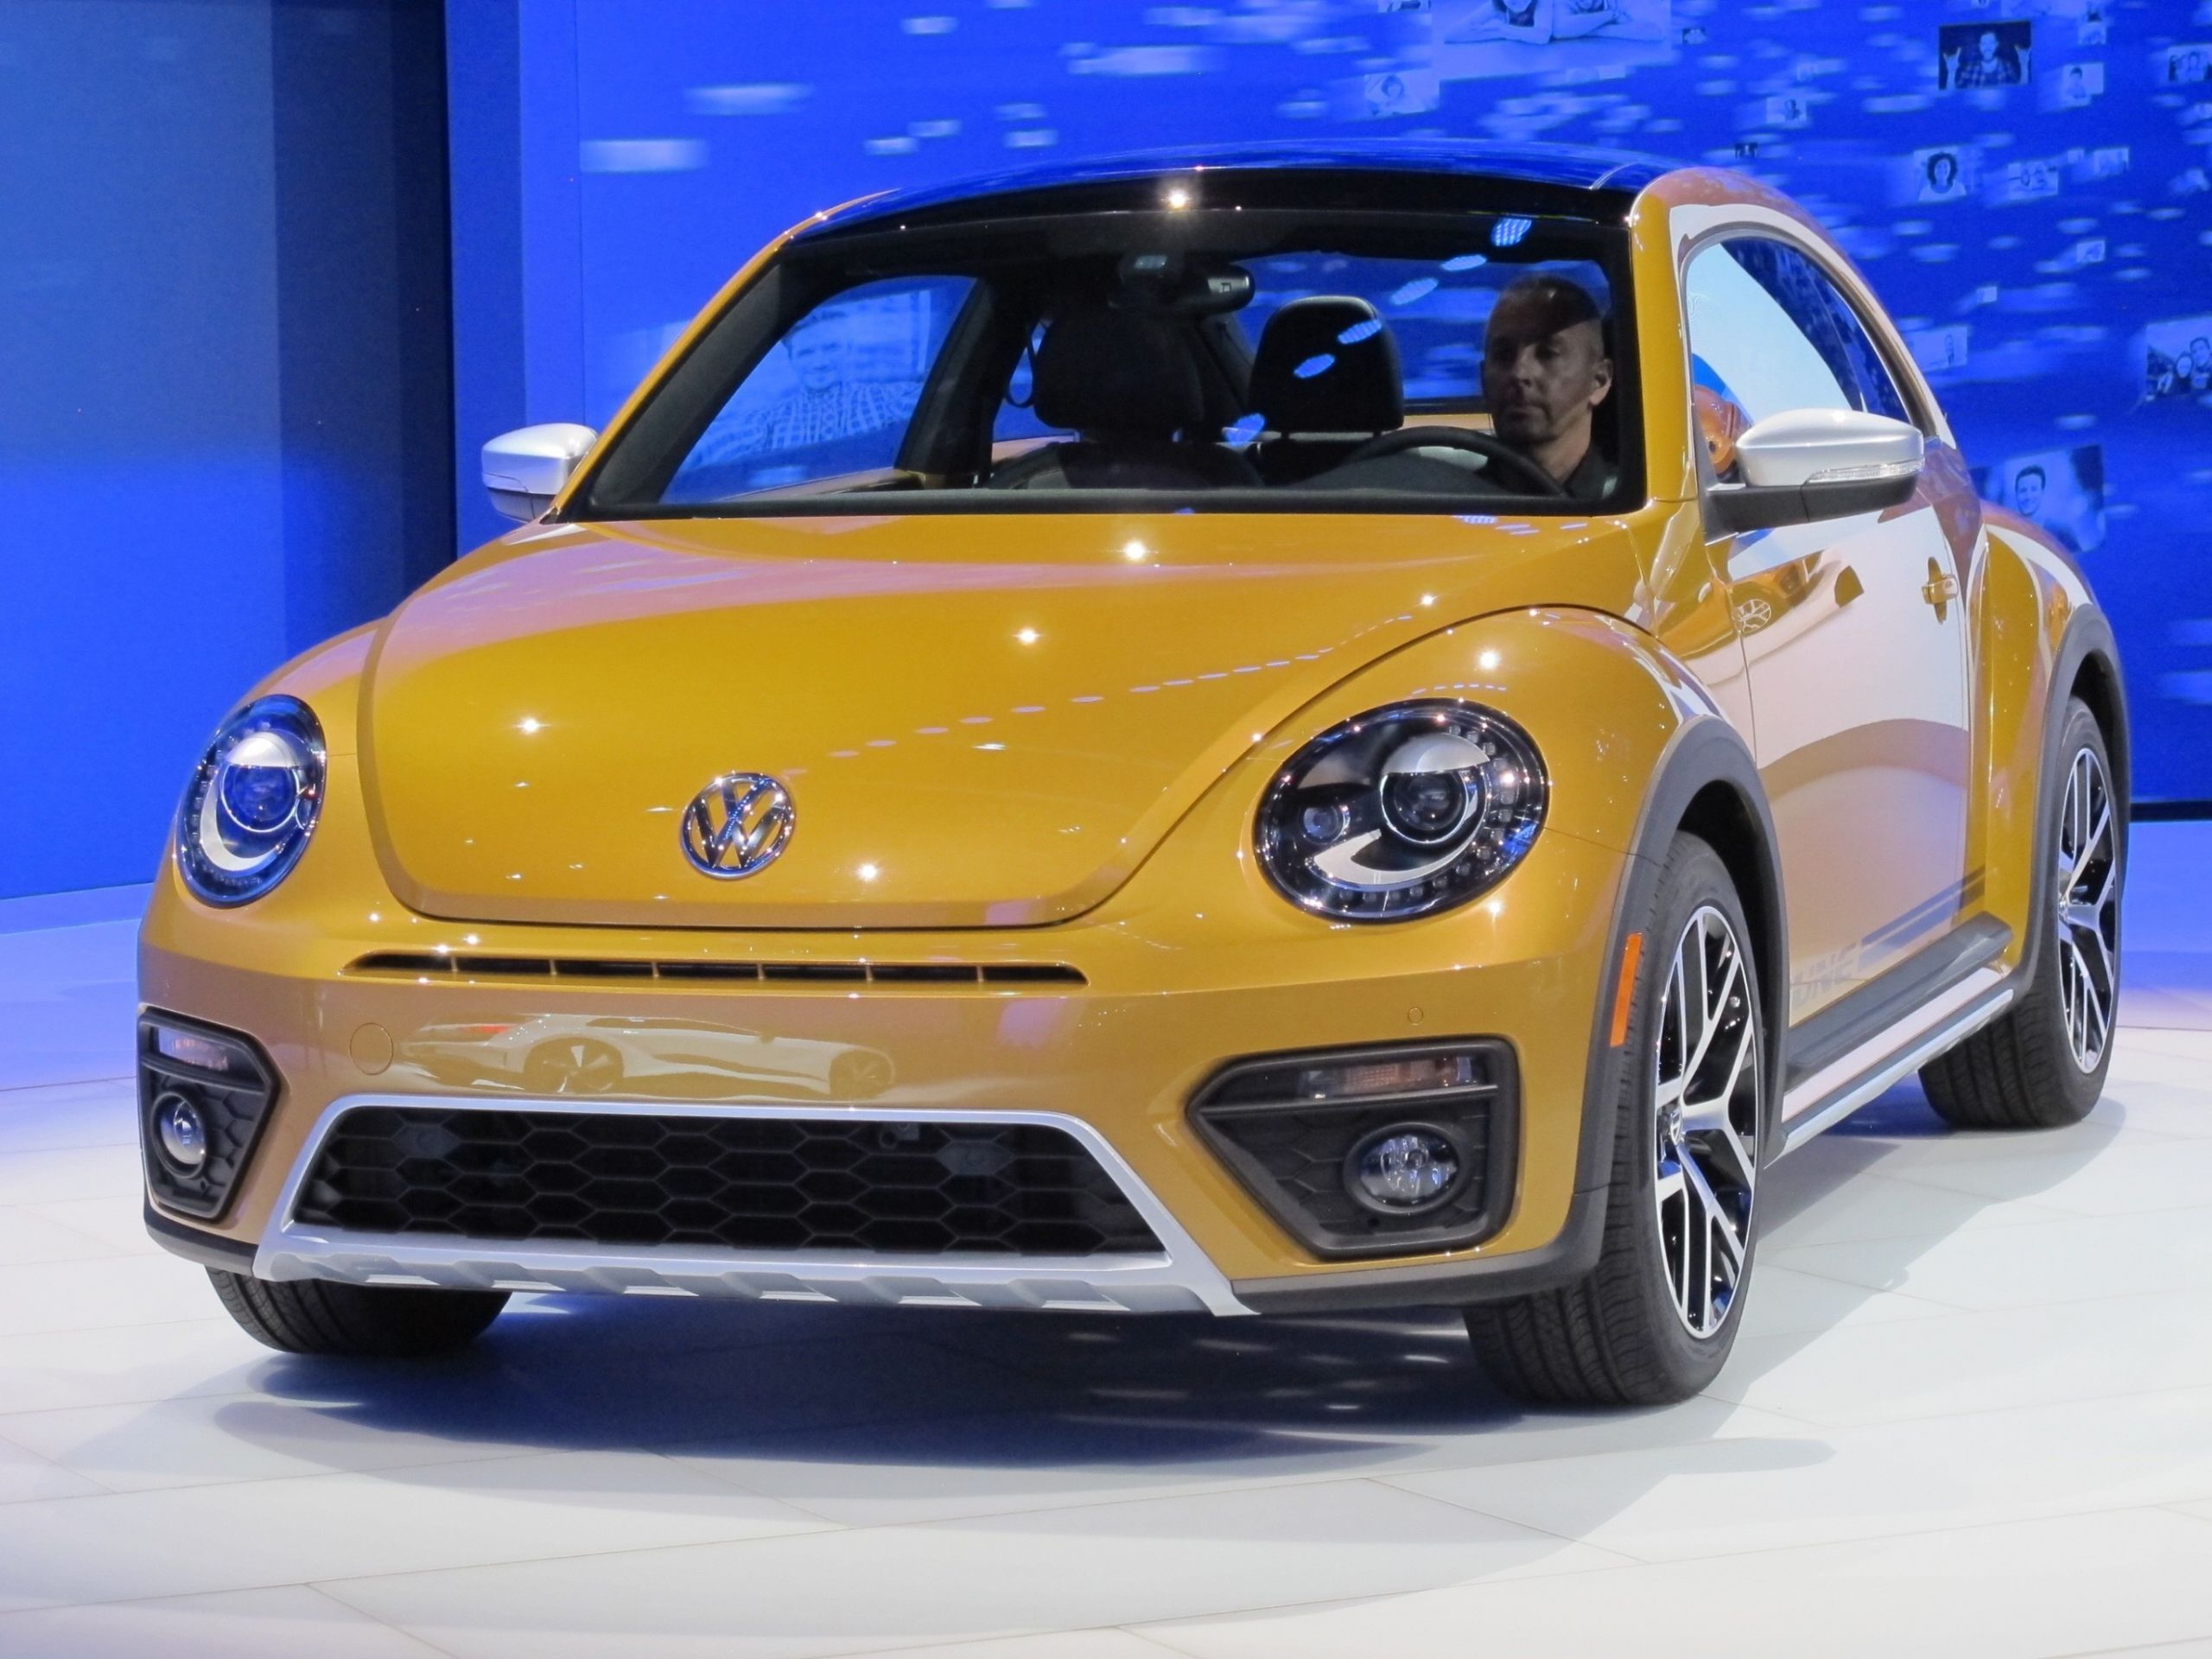 2020 Vw Beetle Dune Review